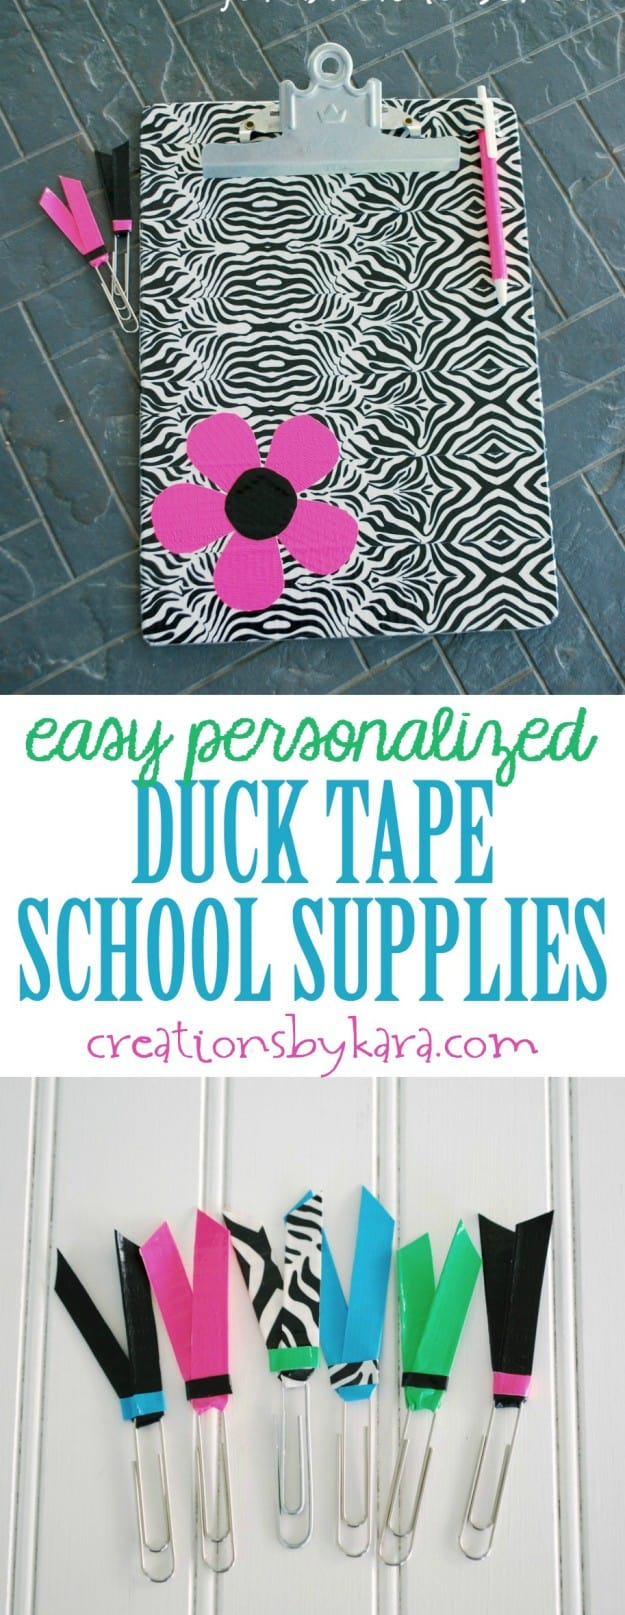 Duck Tape School Supplies - a great way to personalize your supplies for back to school!